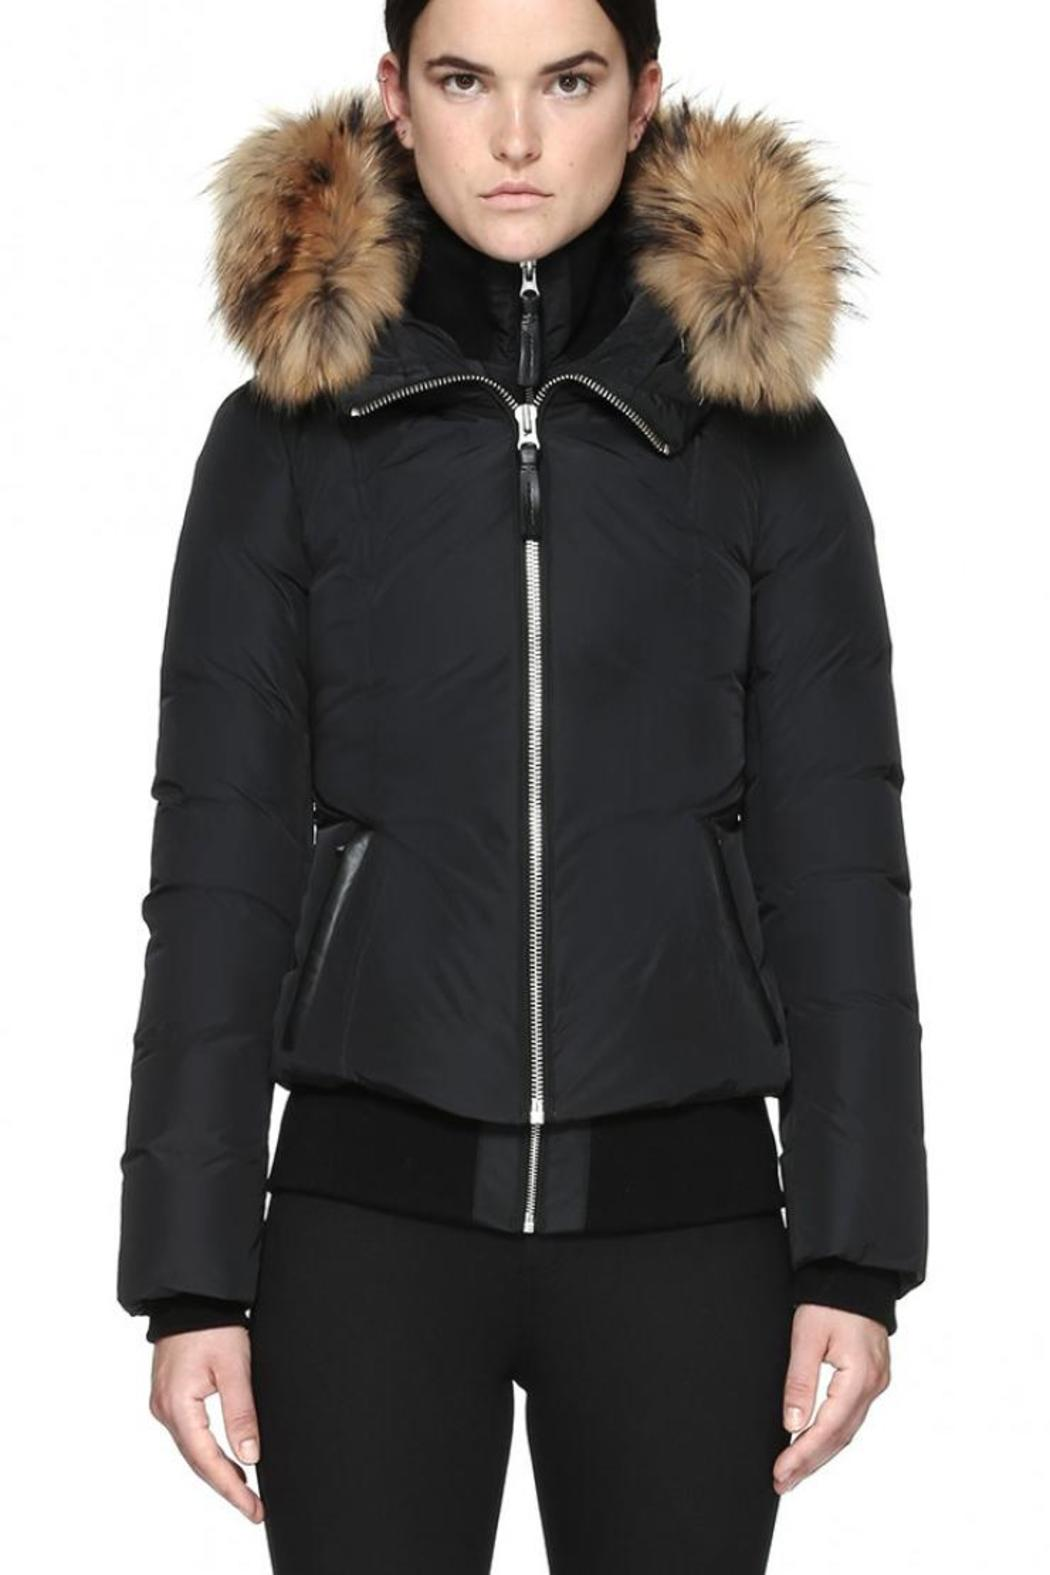 dccdb2383cb aliexpress mackage womens katryn hip length classic down jacket with fur  hood a3167 dc8f6  sweden mackage romane down coat front cropped image 867b9  27391